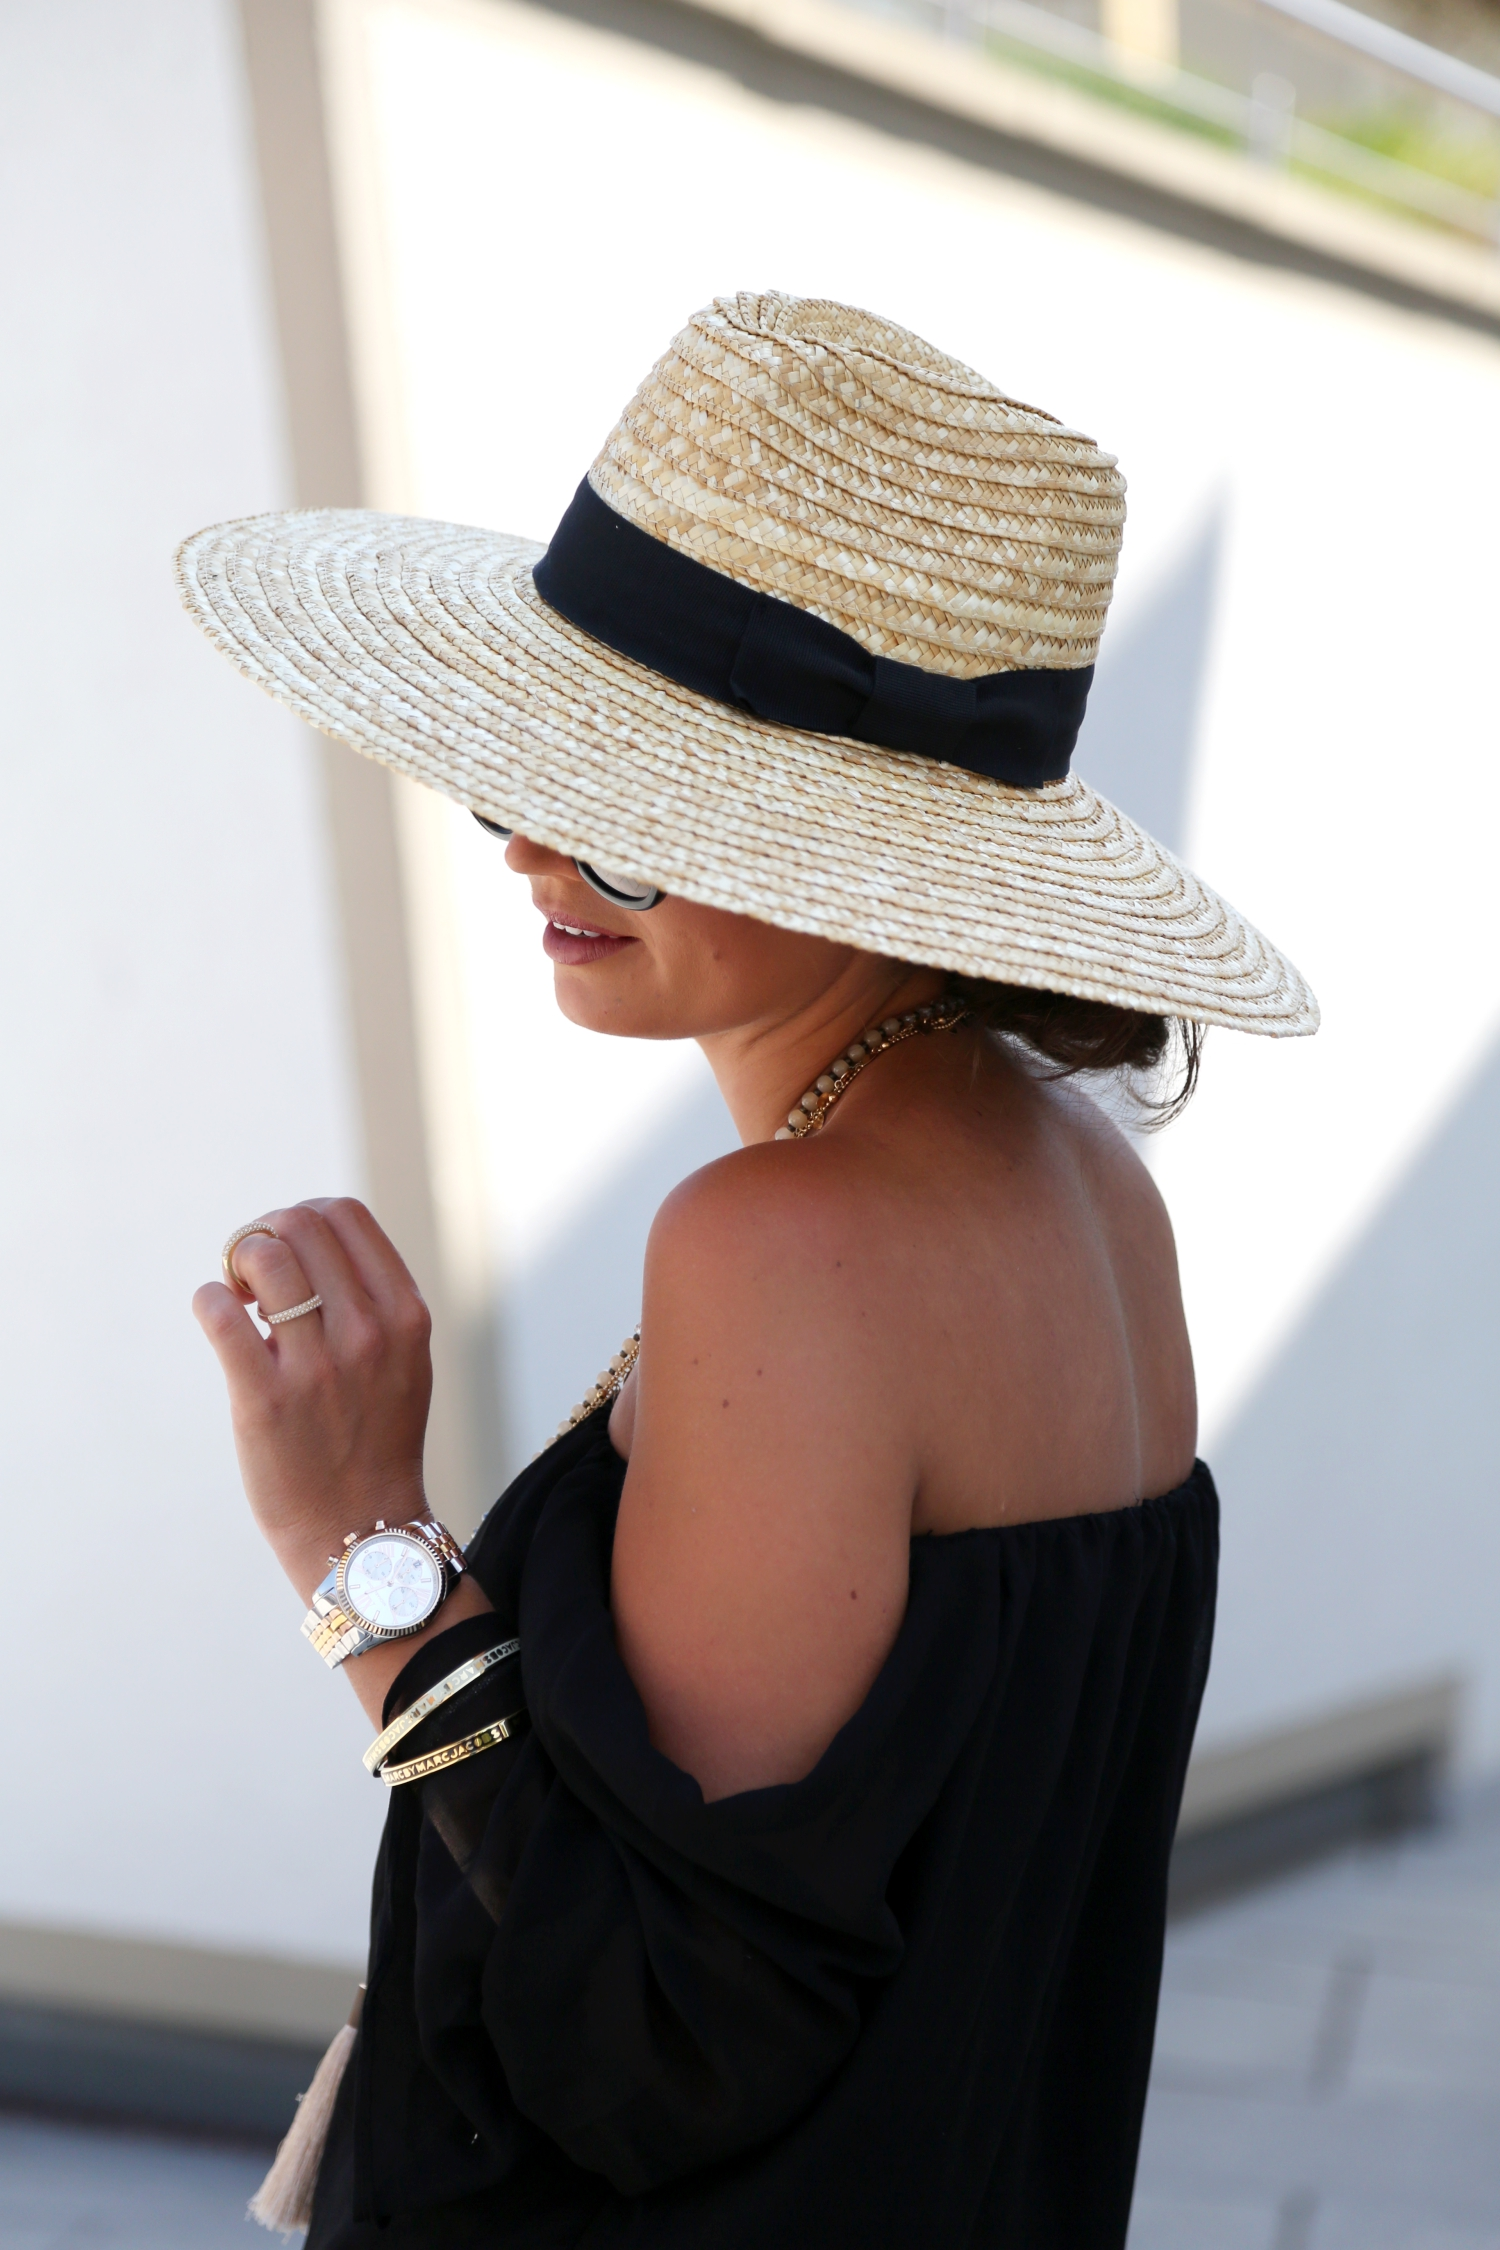 outfit-details-hat-fashionhippieloves